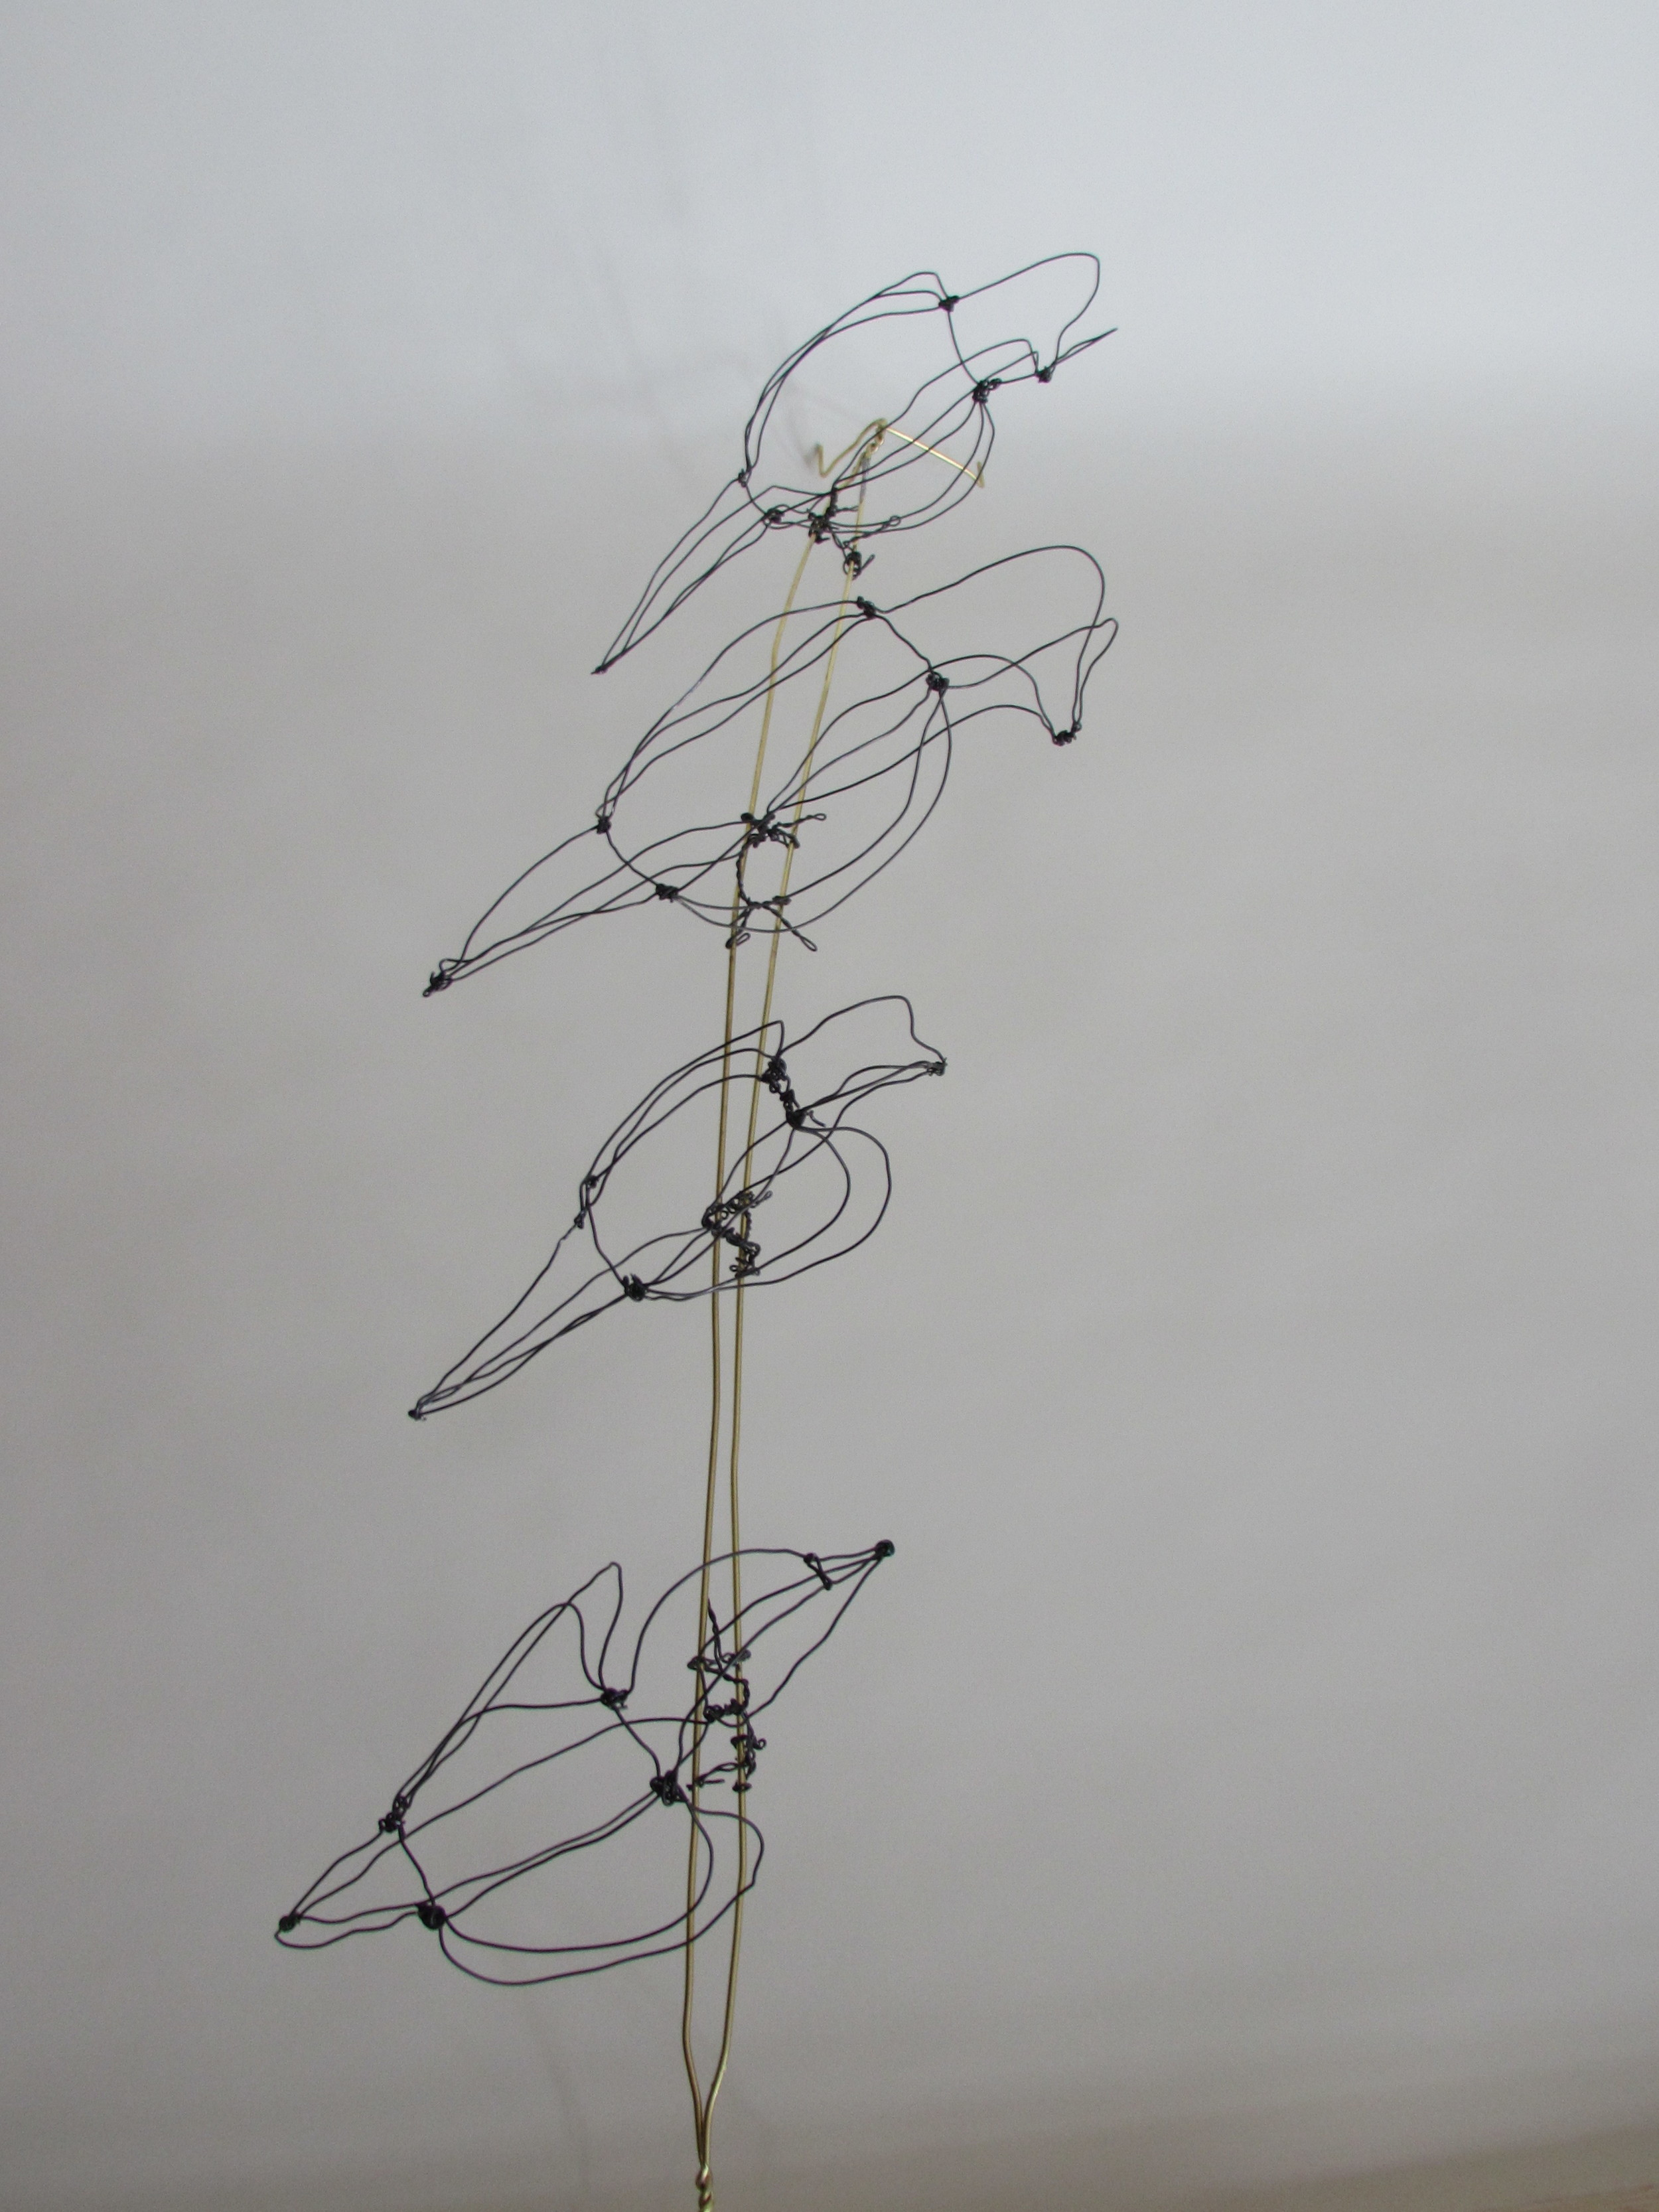 Rich Harkin's Calder-inspired wire drawings invoke Calder-esque tensions between line and form.